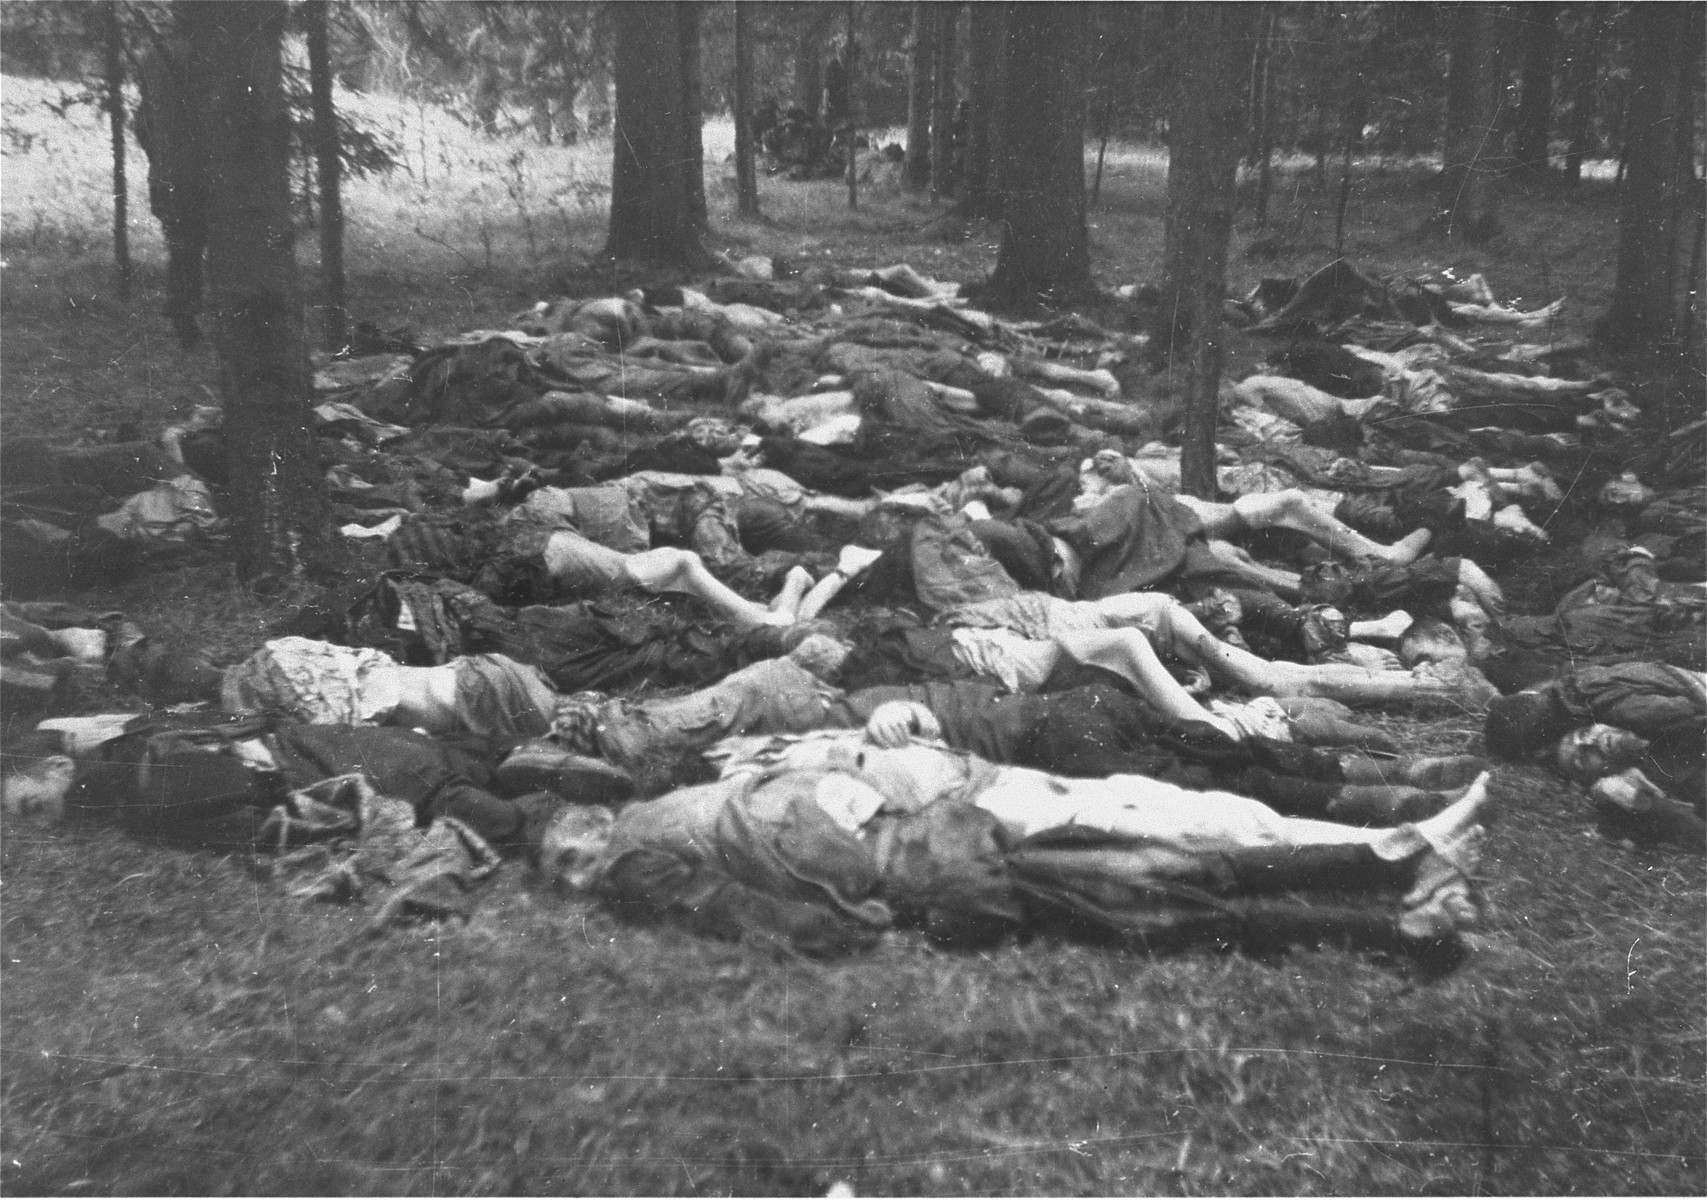 The bodies of executed prisoners in the Gunskirchen concentration camp.  American soldiers are visible through the trees at rear.